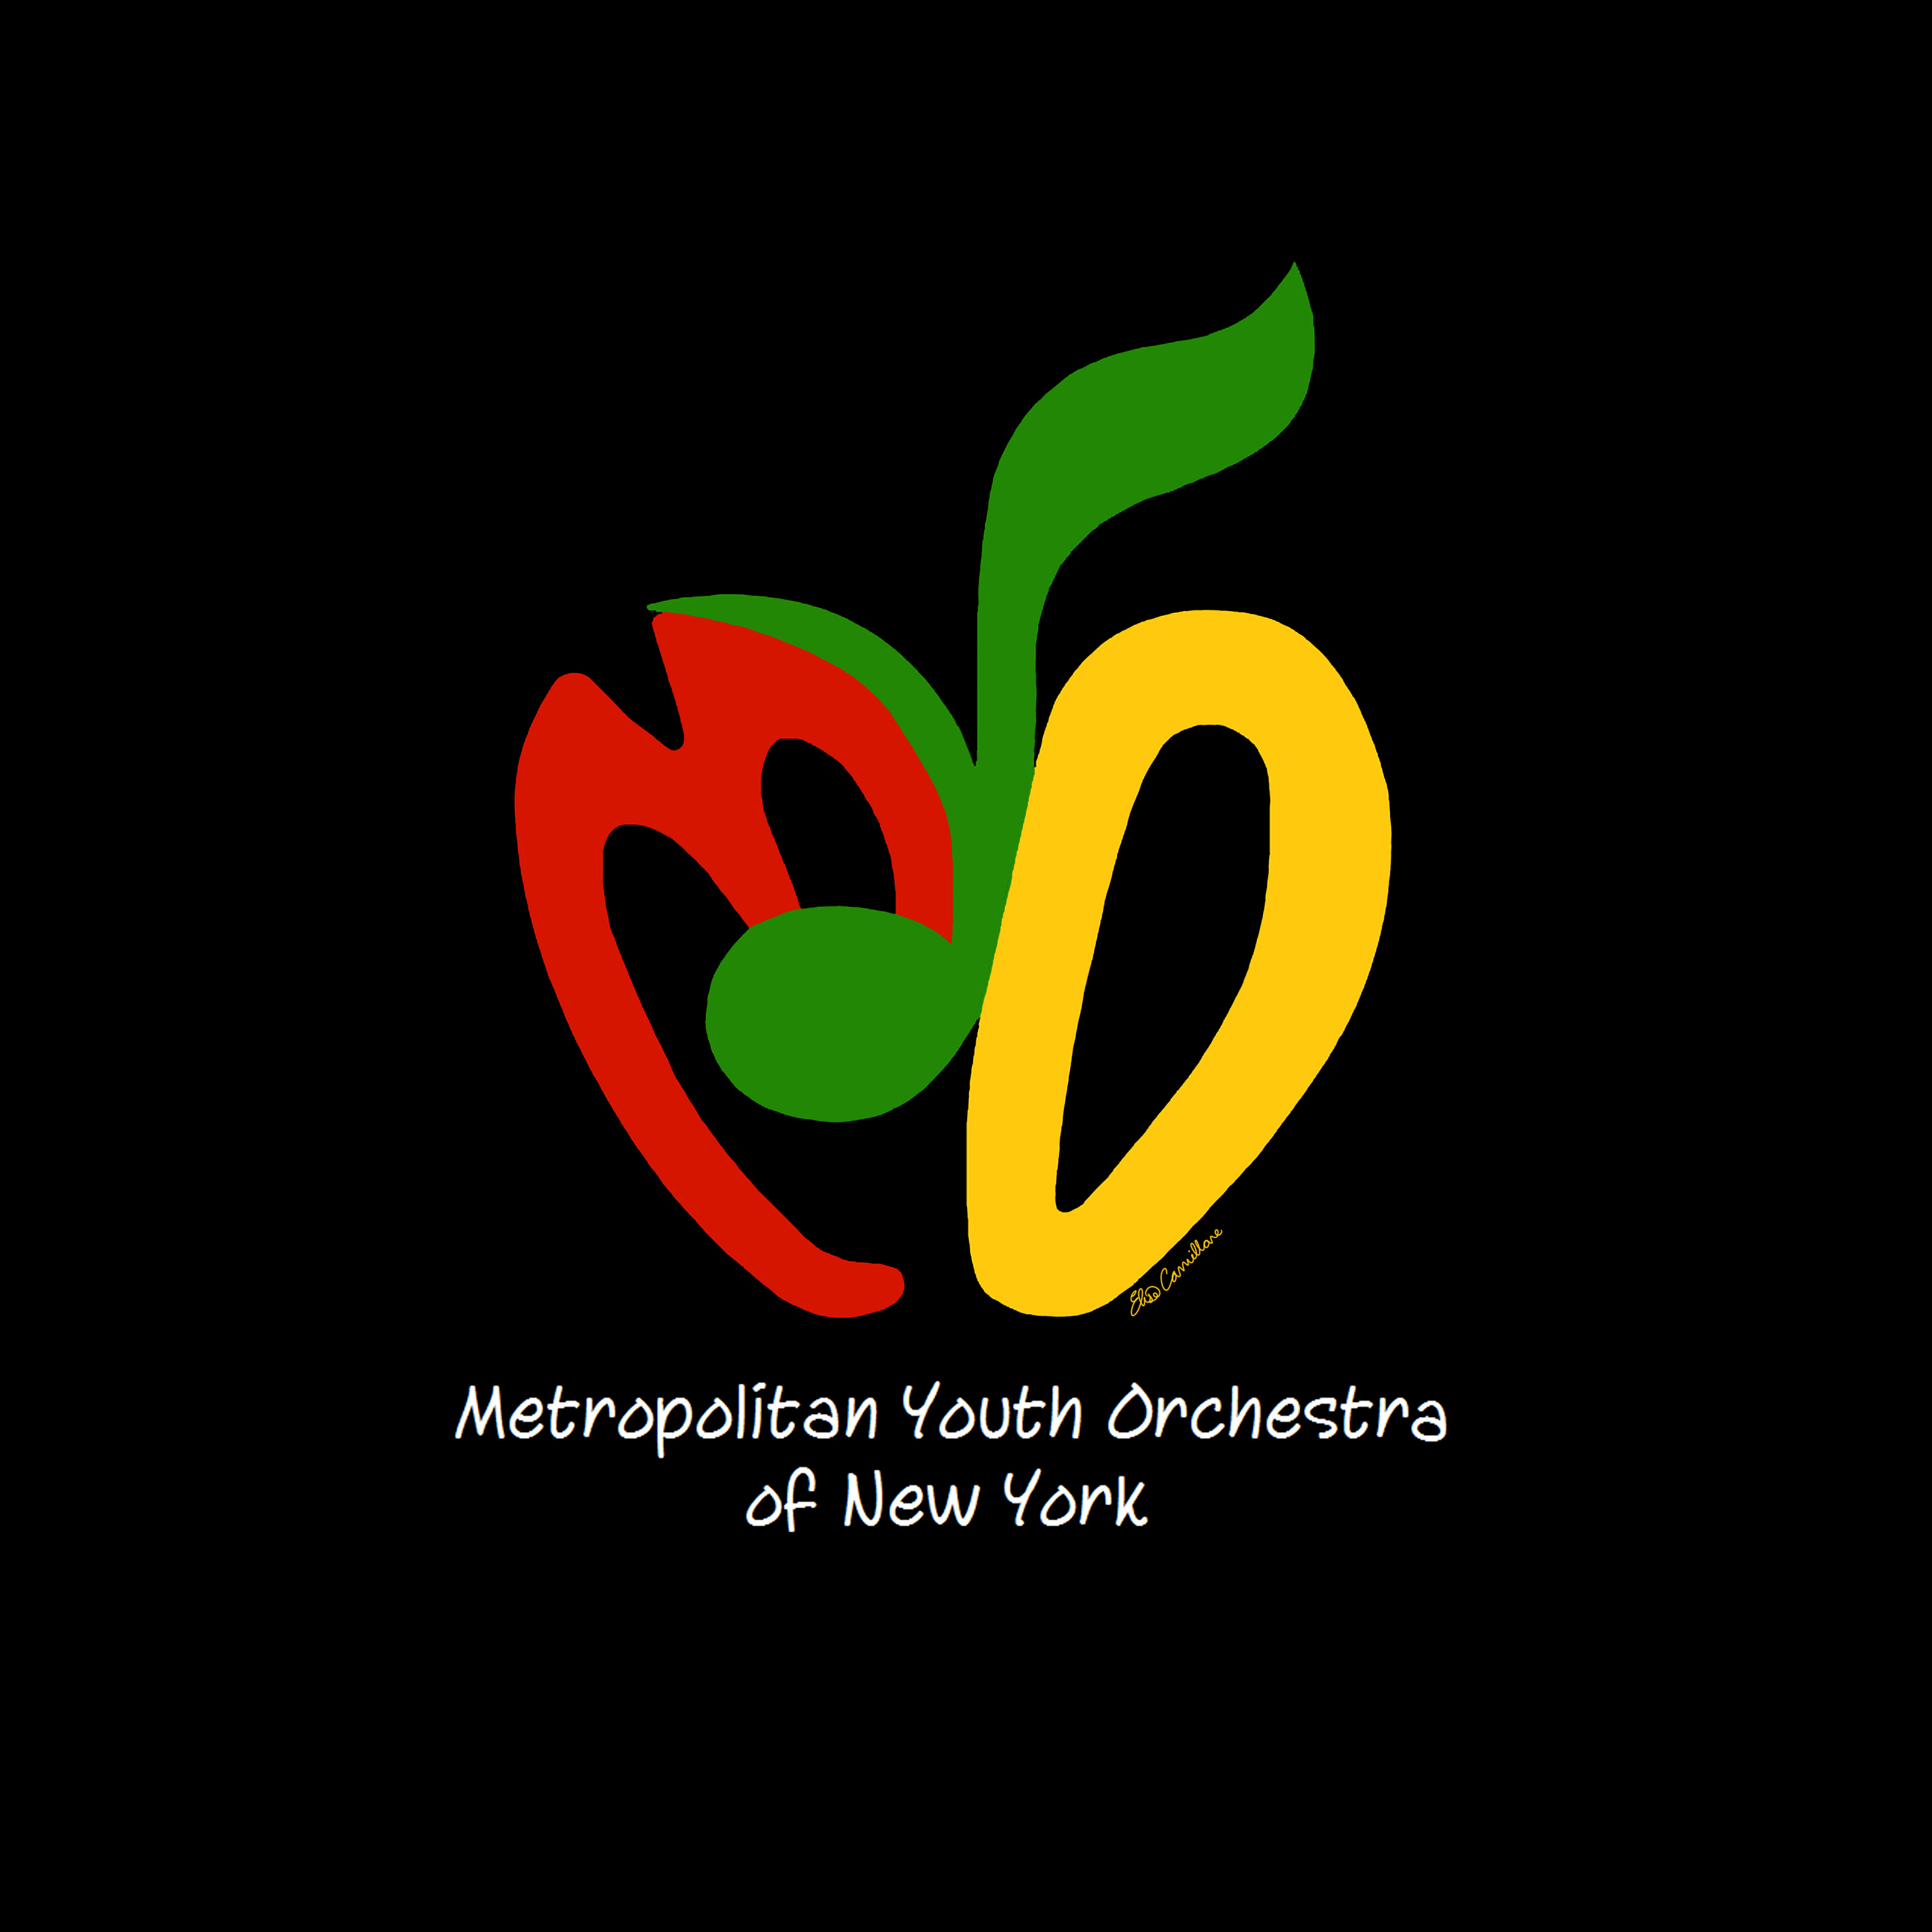 Myo T Shirt Design Contest The Metropolitan Youth Orchestra Of New